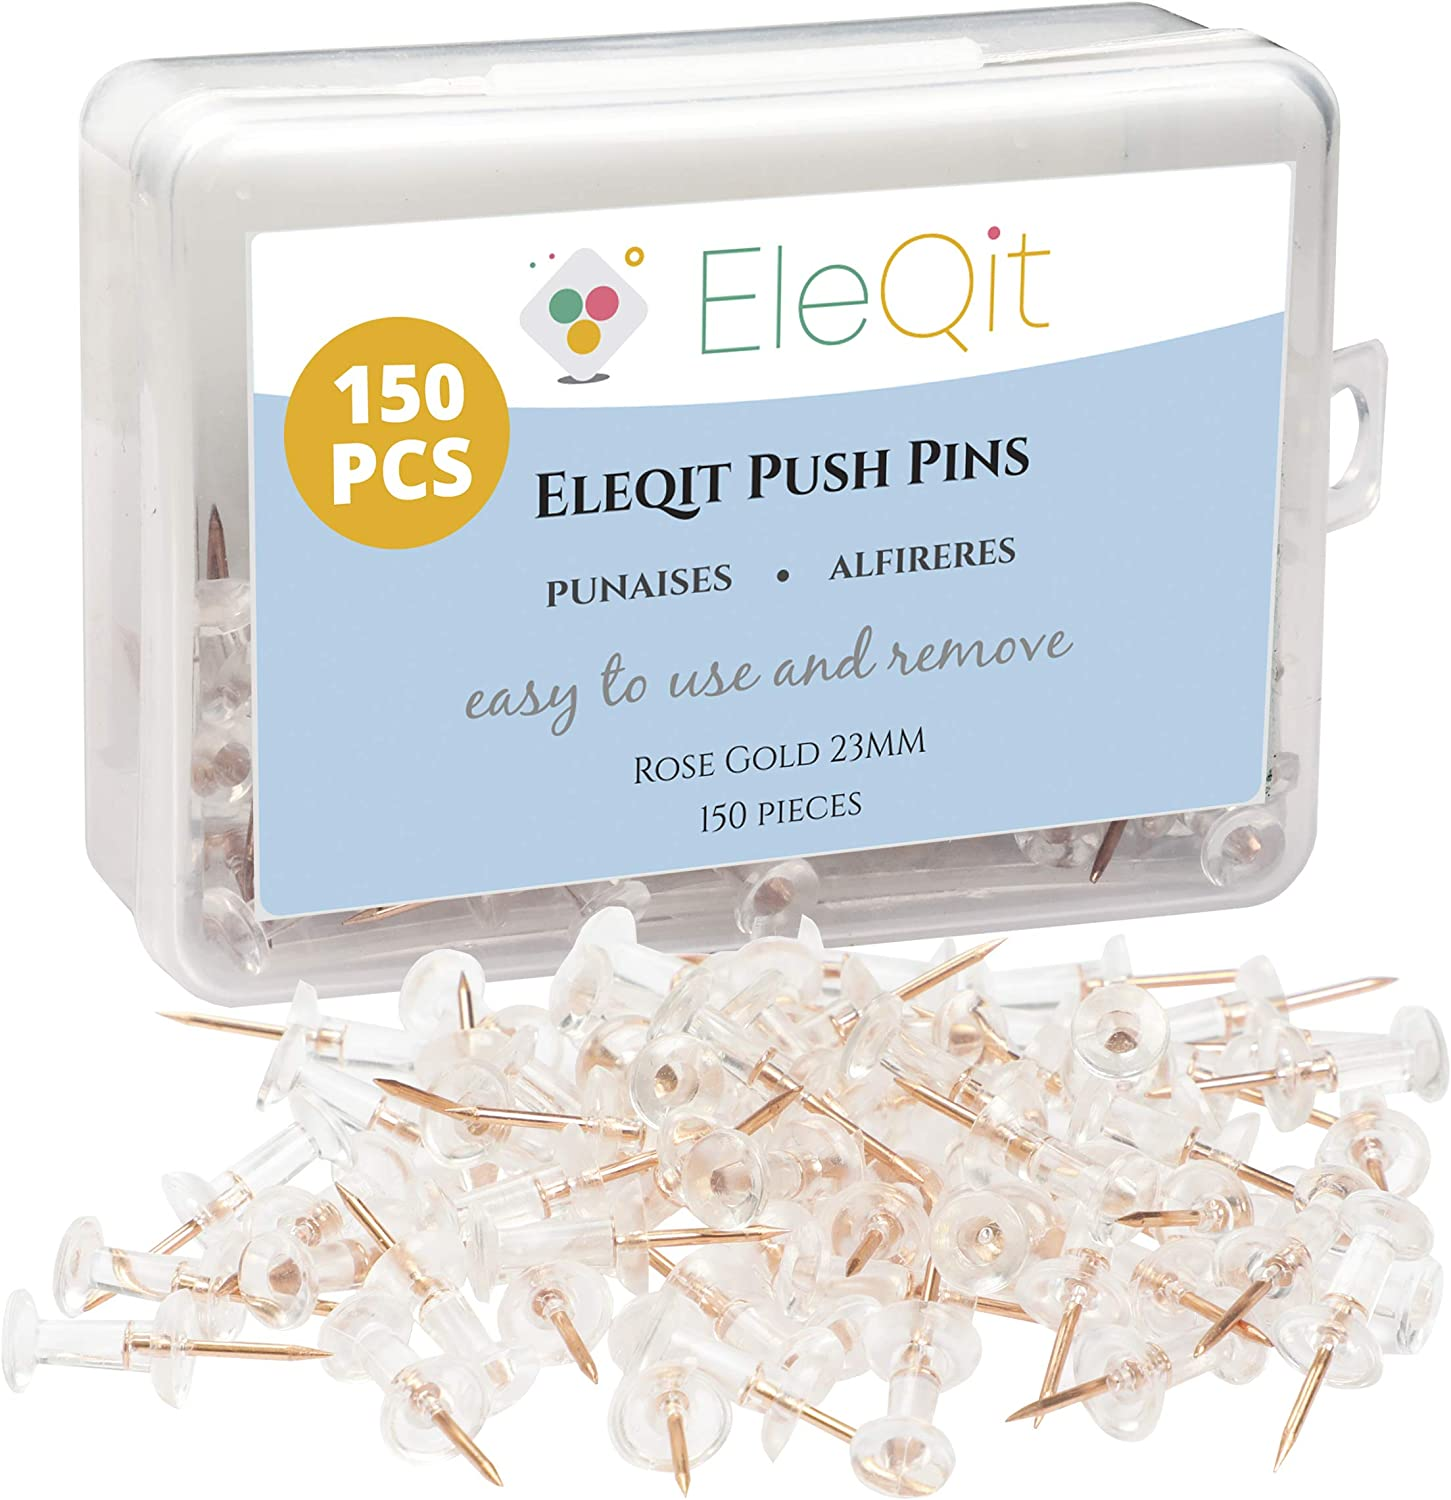 EleQit Push Pins 150 Pcs - Clear Plastic Head with Rose Gold Steel Point Used as Thumb Tacks on Maps, Bulletin Boards, Walls, Home, Room Decor, Office or Dorm Essentials